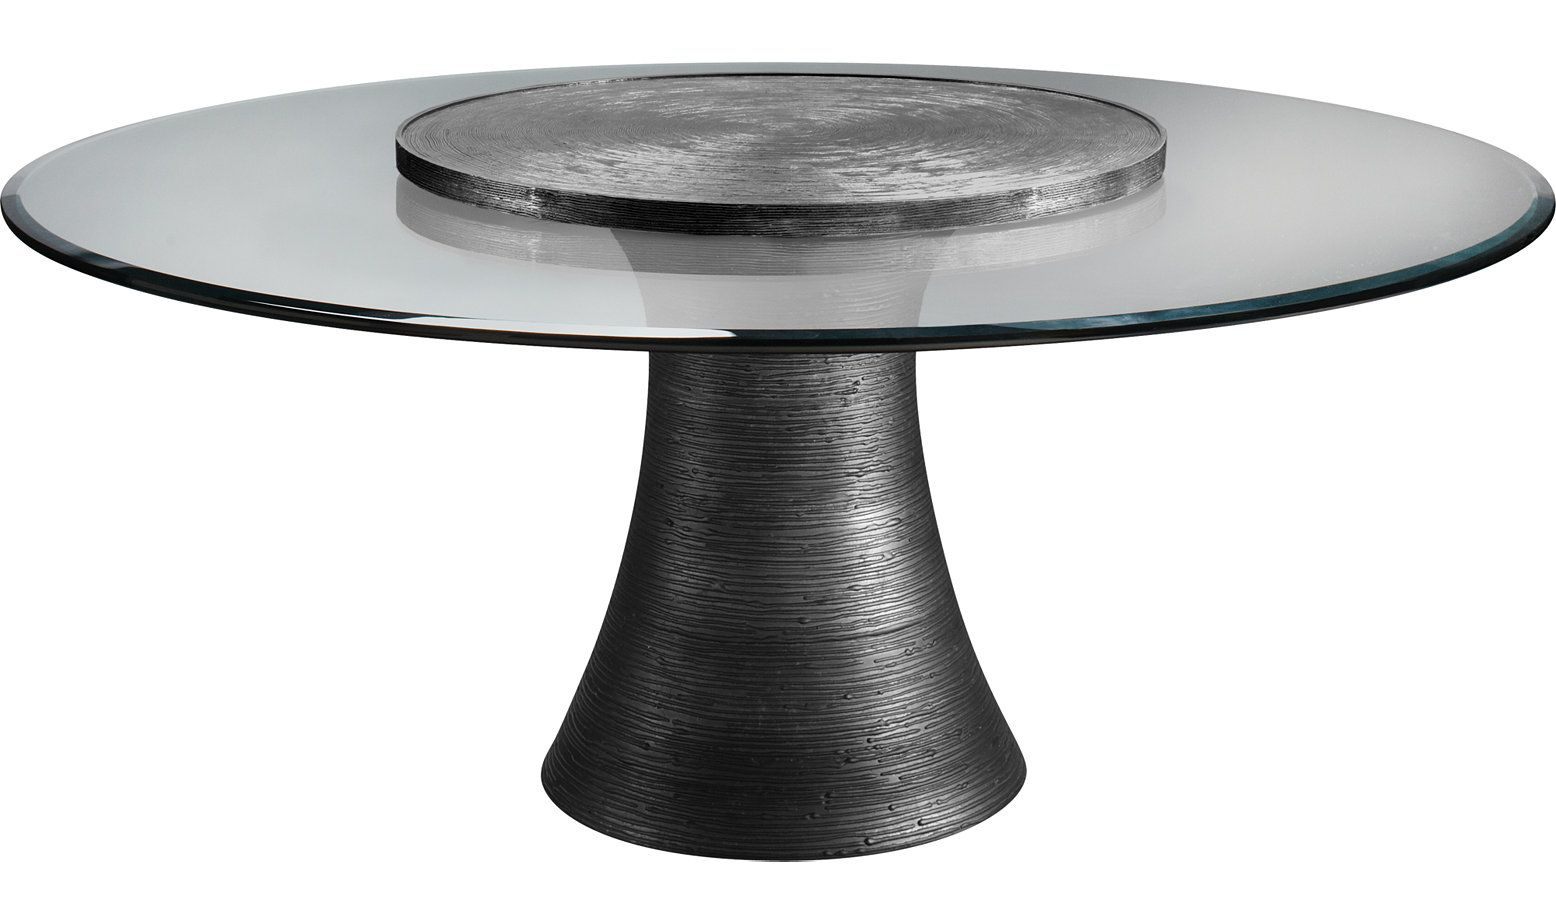 Katoucha 72 Dining Table W 36 Lazy Susan By Jacques Garcia 3837 72 Baker Furniture Dining Table Table Lazy Susan